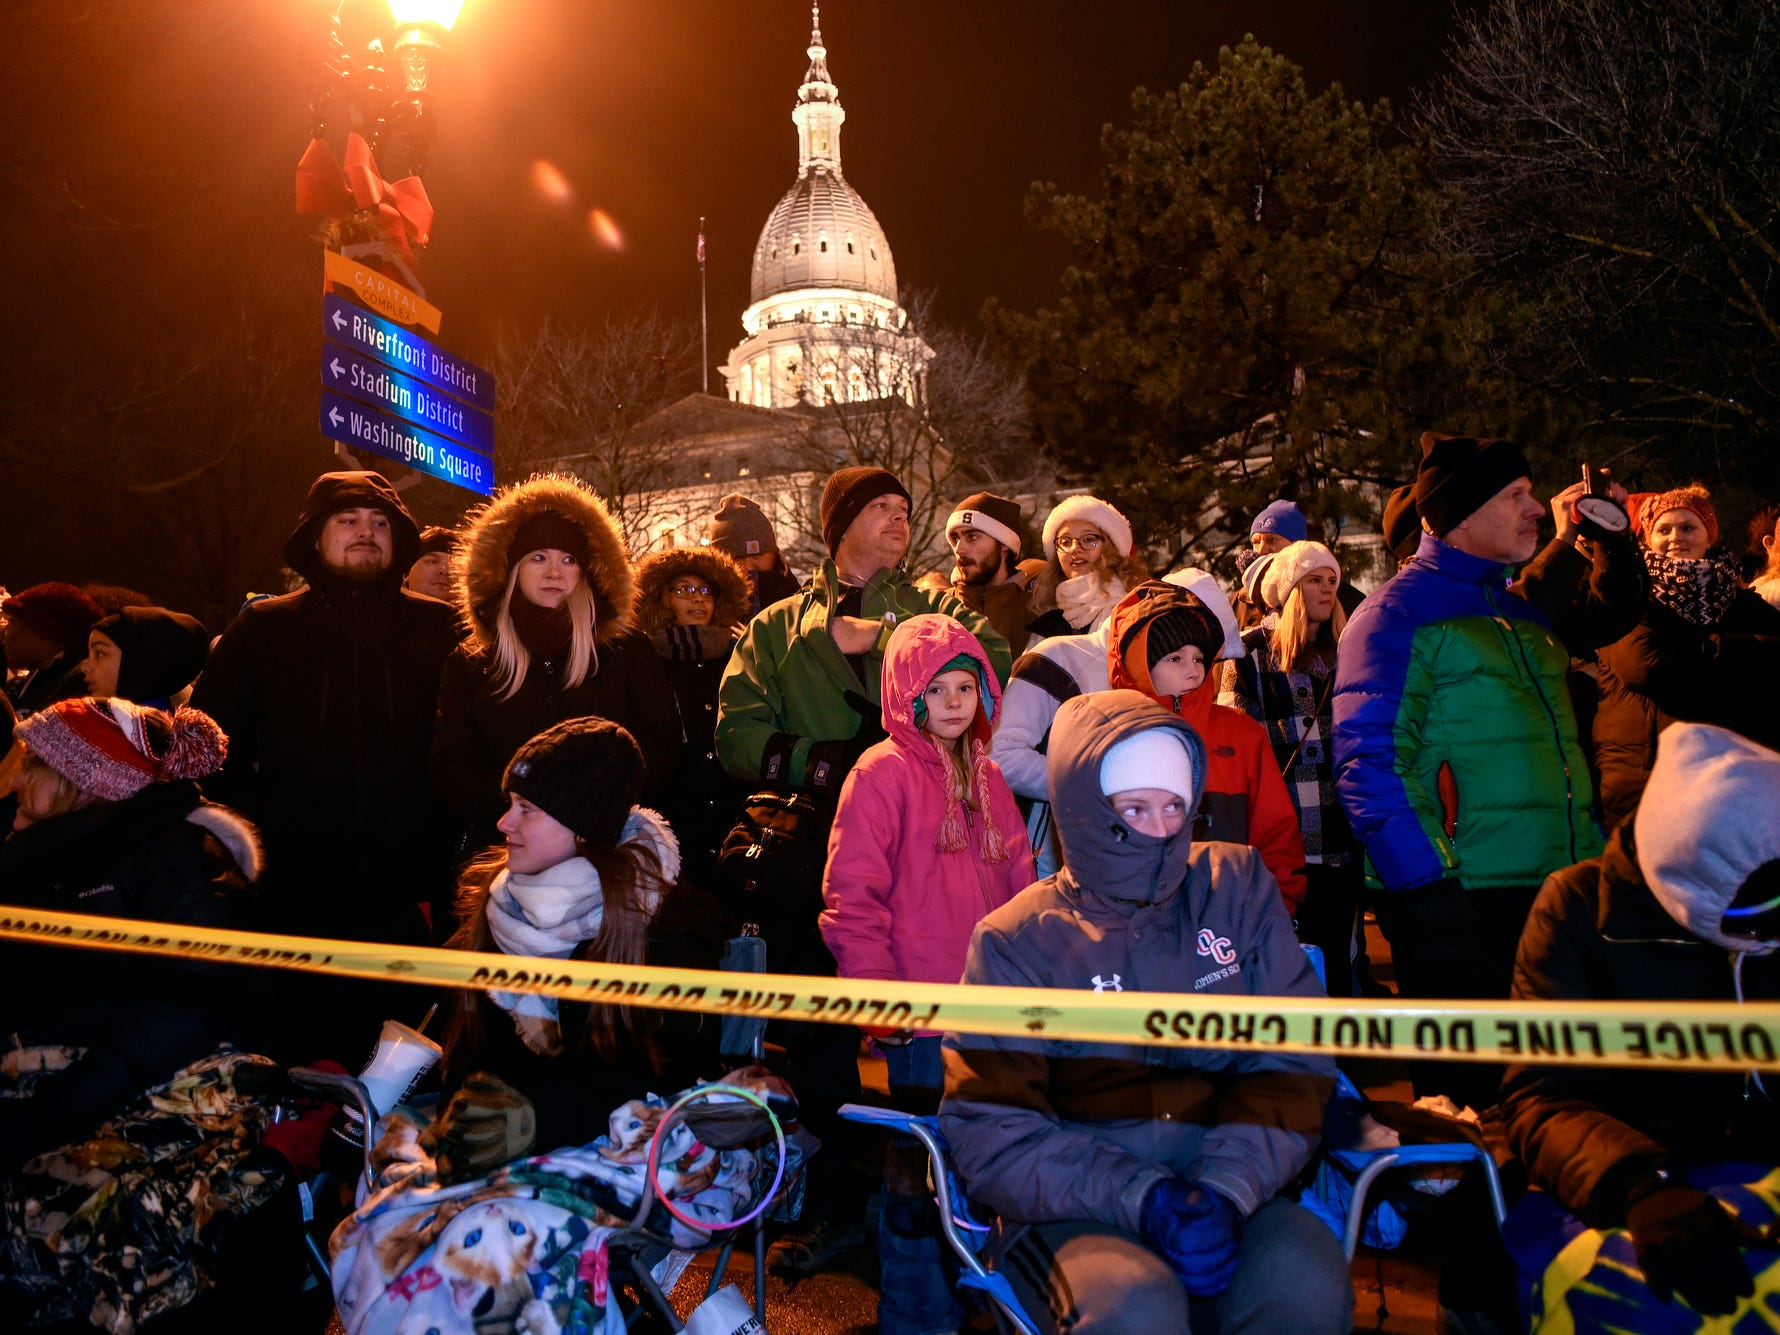 Spectators watch outside the Capitol during the Silver Bells in the City Electric Light Parade on Friday, Nov. 16, 2018, in downtown Lansing.